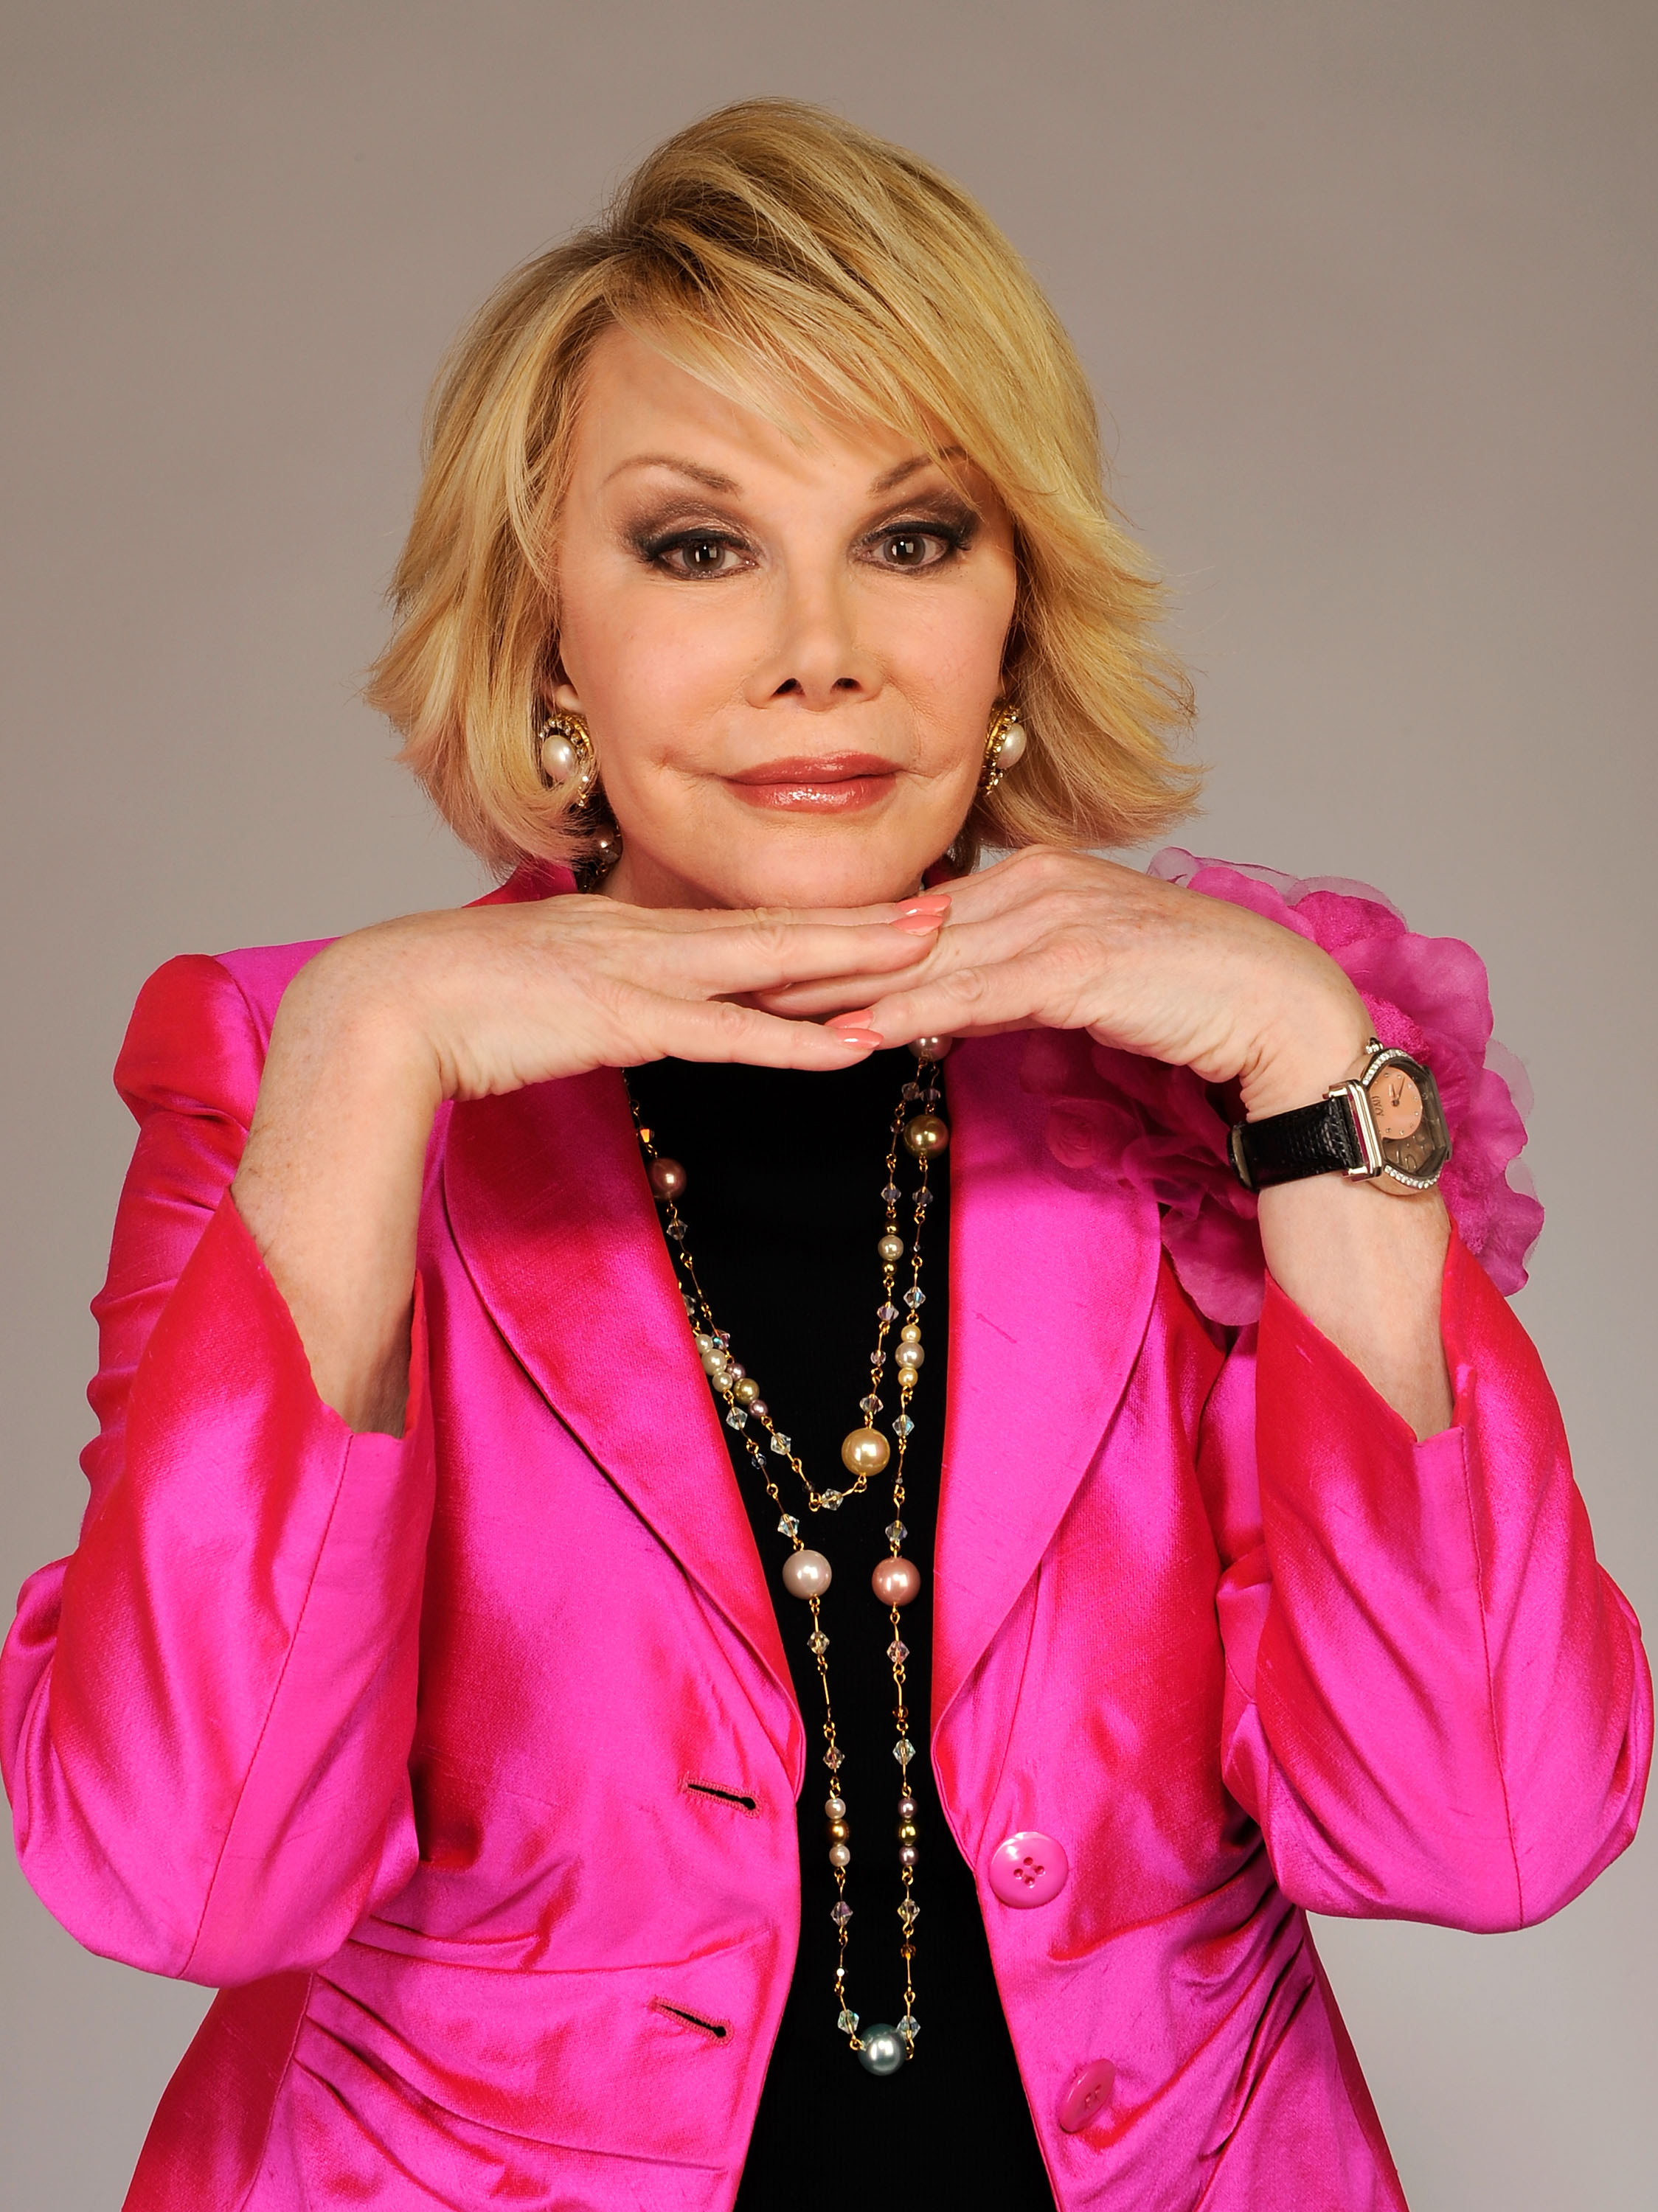 Joan Rivers from the film 'Joan Rivers - A Piece of Work' attends the Tribeca Film Festival 2010 portrait studio at the FilmMaker Industry Press Center on April 27, 2010 in New York, New York.